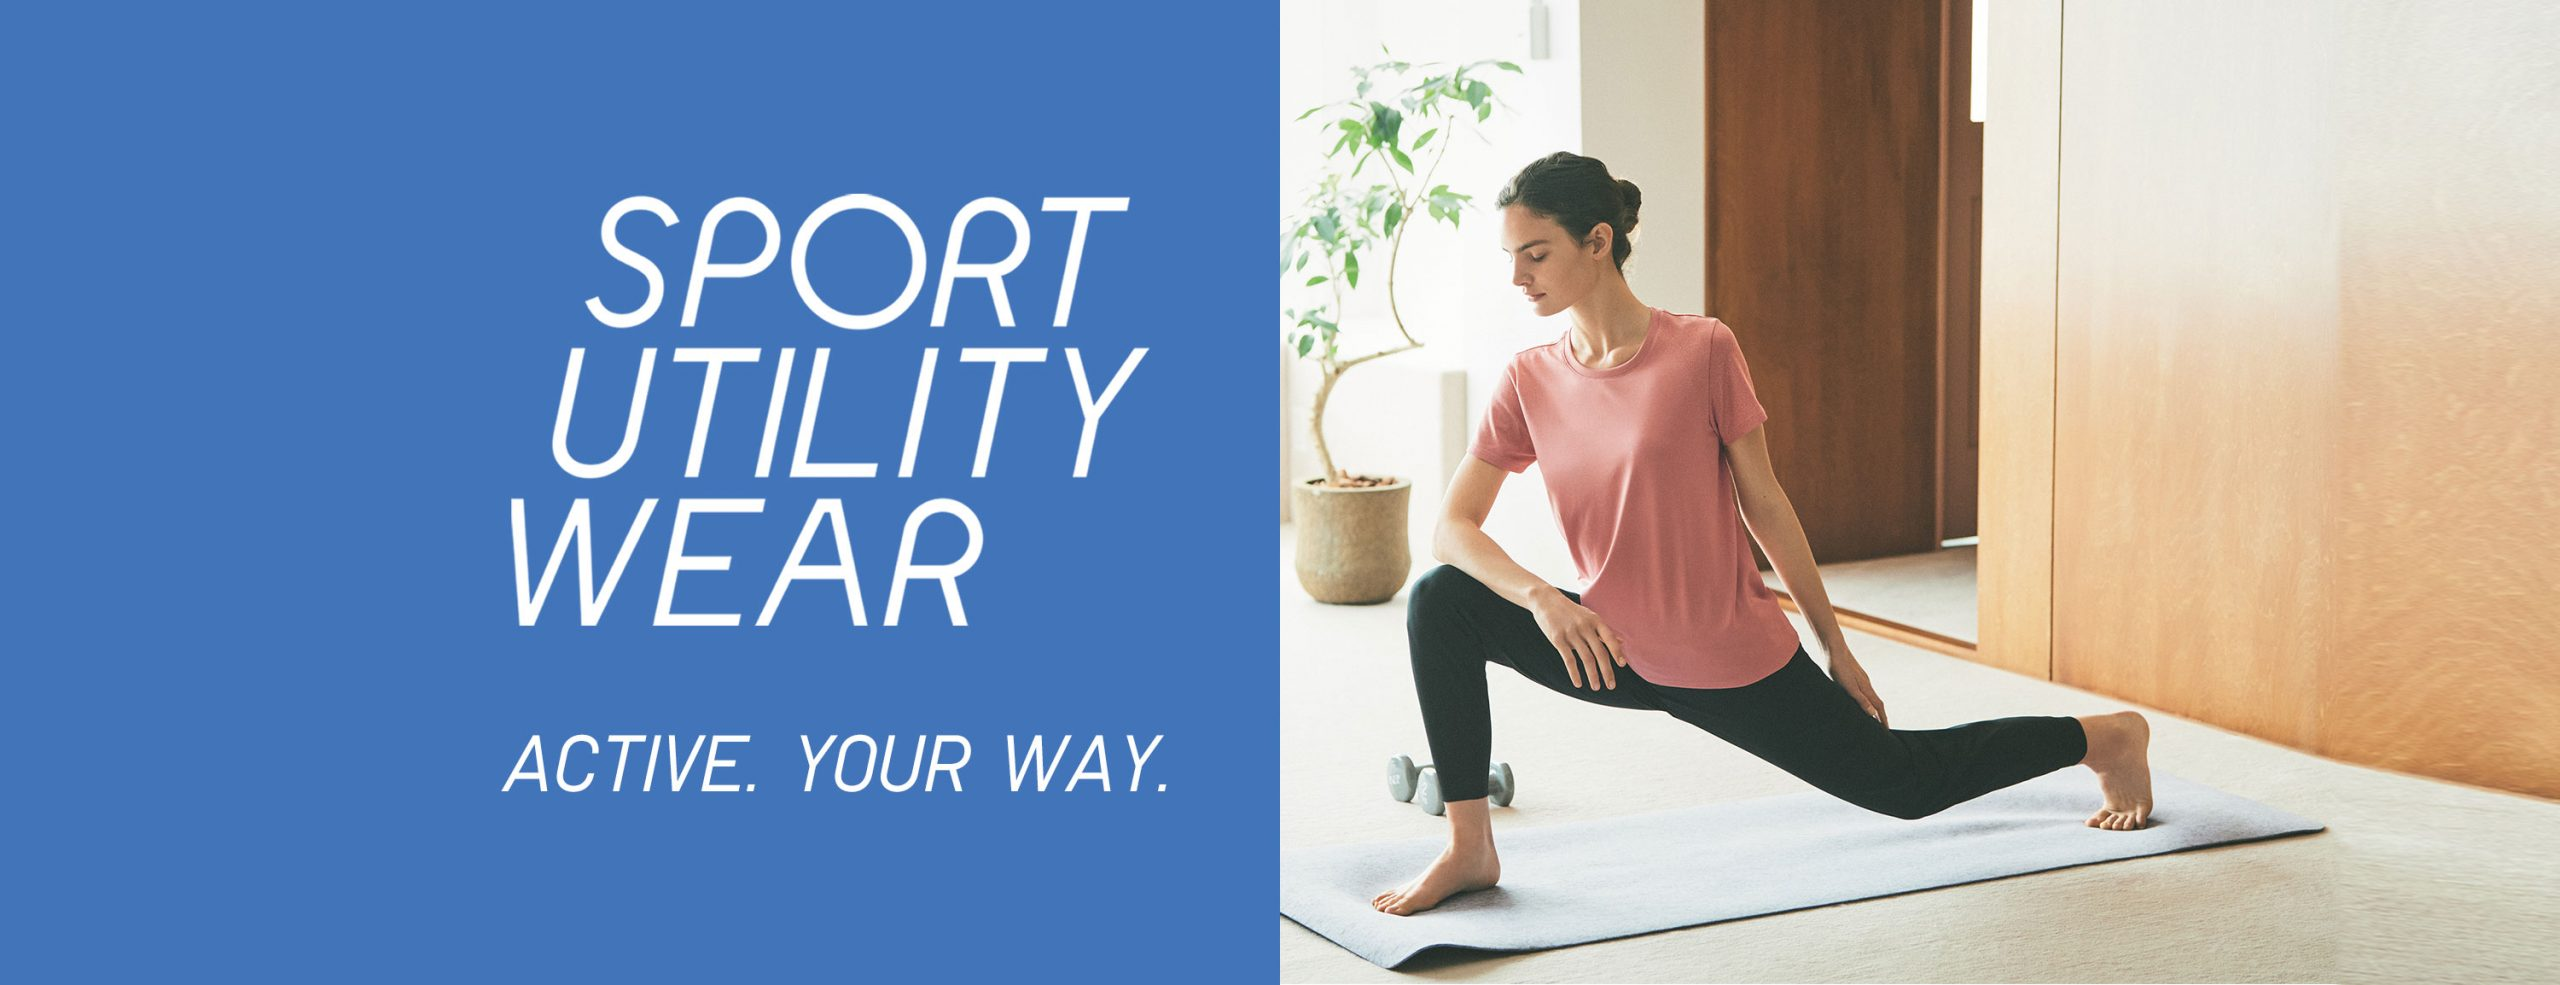 Stay Active Your Way with UNIQLO's Sport Utility Wear Collection